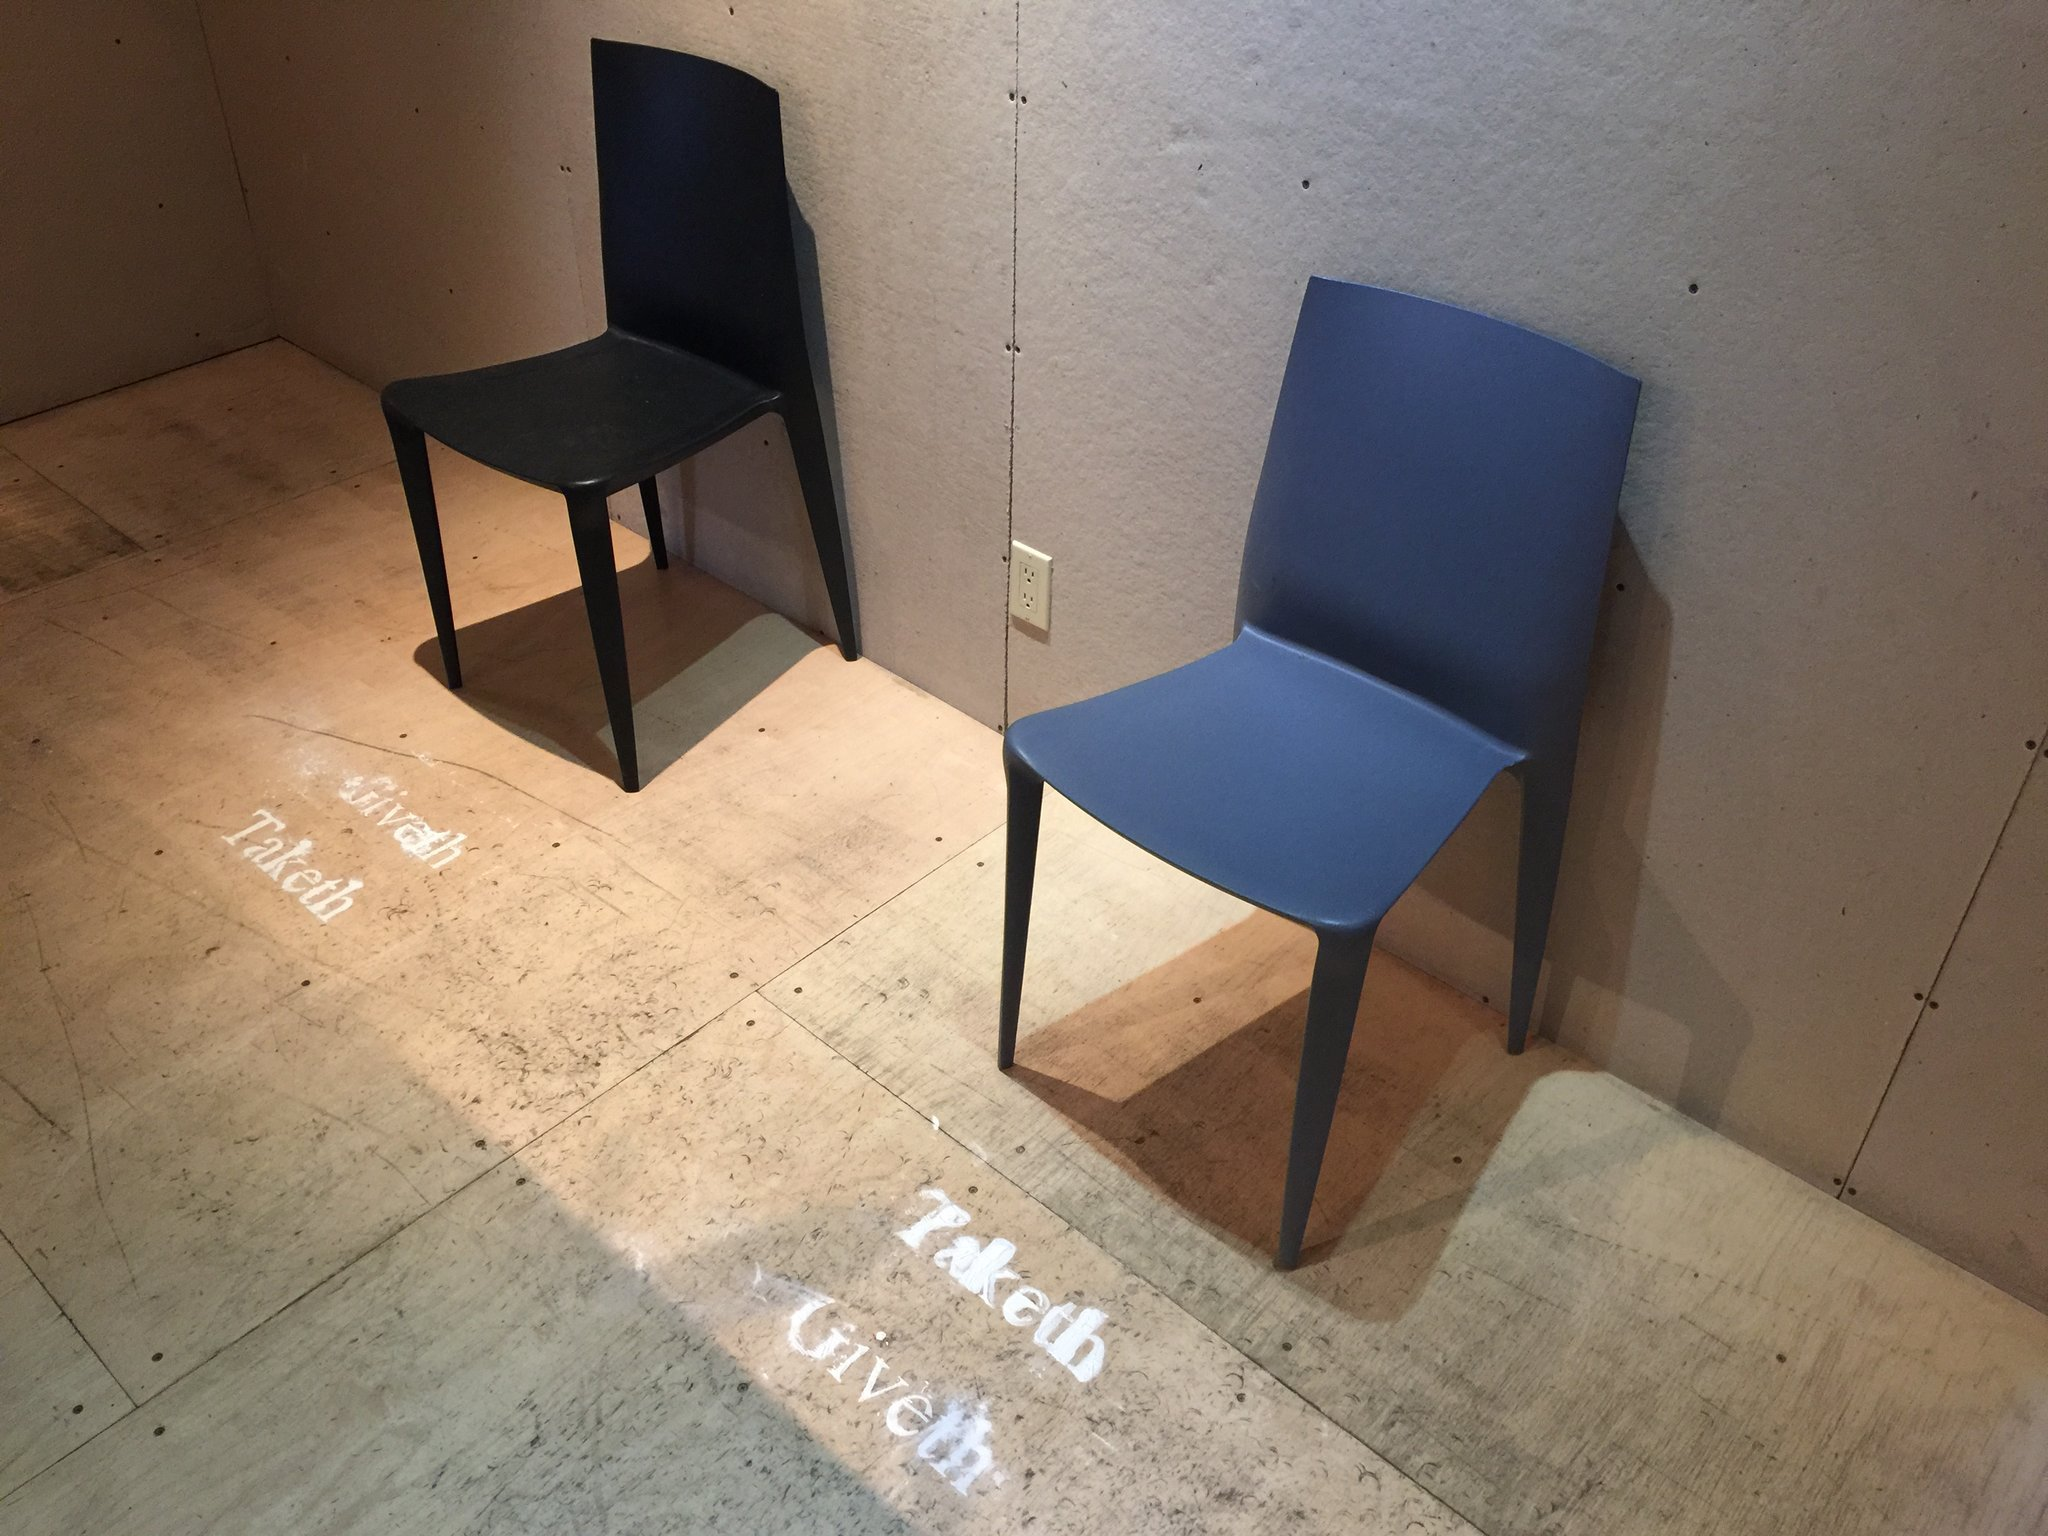 Giveth/Taketh, Taketh/Giveth (with coffee service), 2015, Two chairs with talcum powder lettering, Variable dimensions